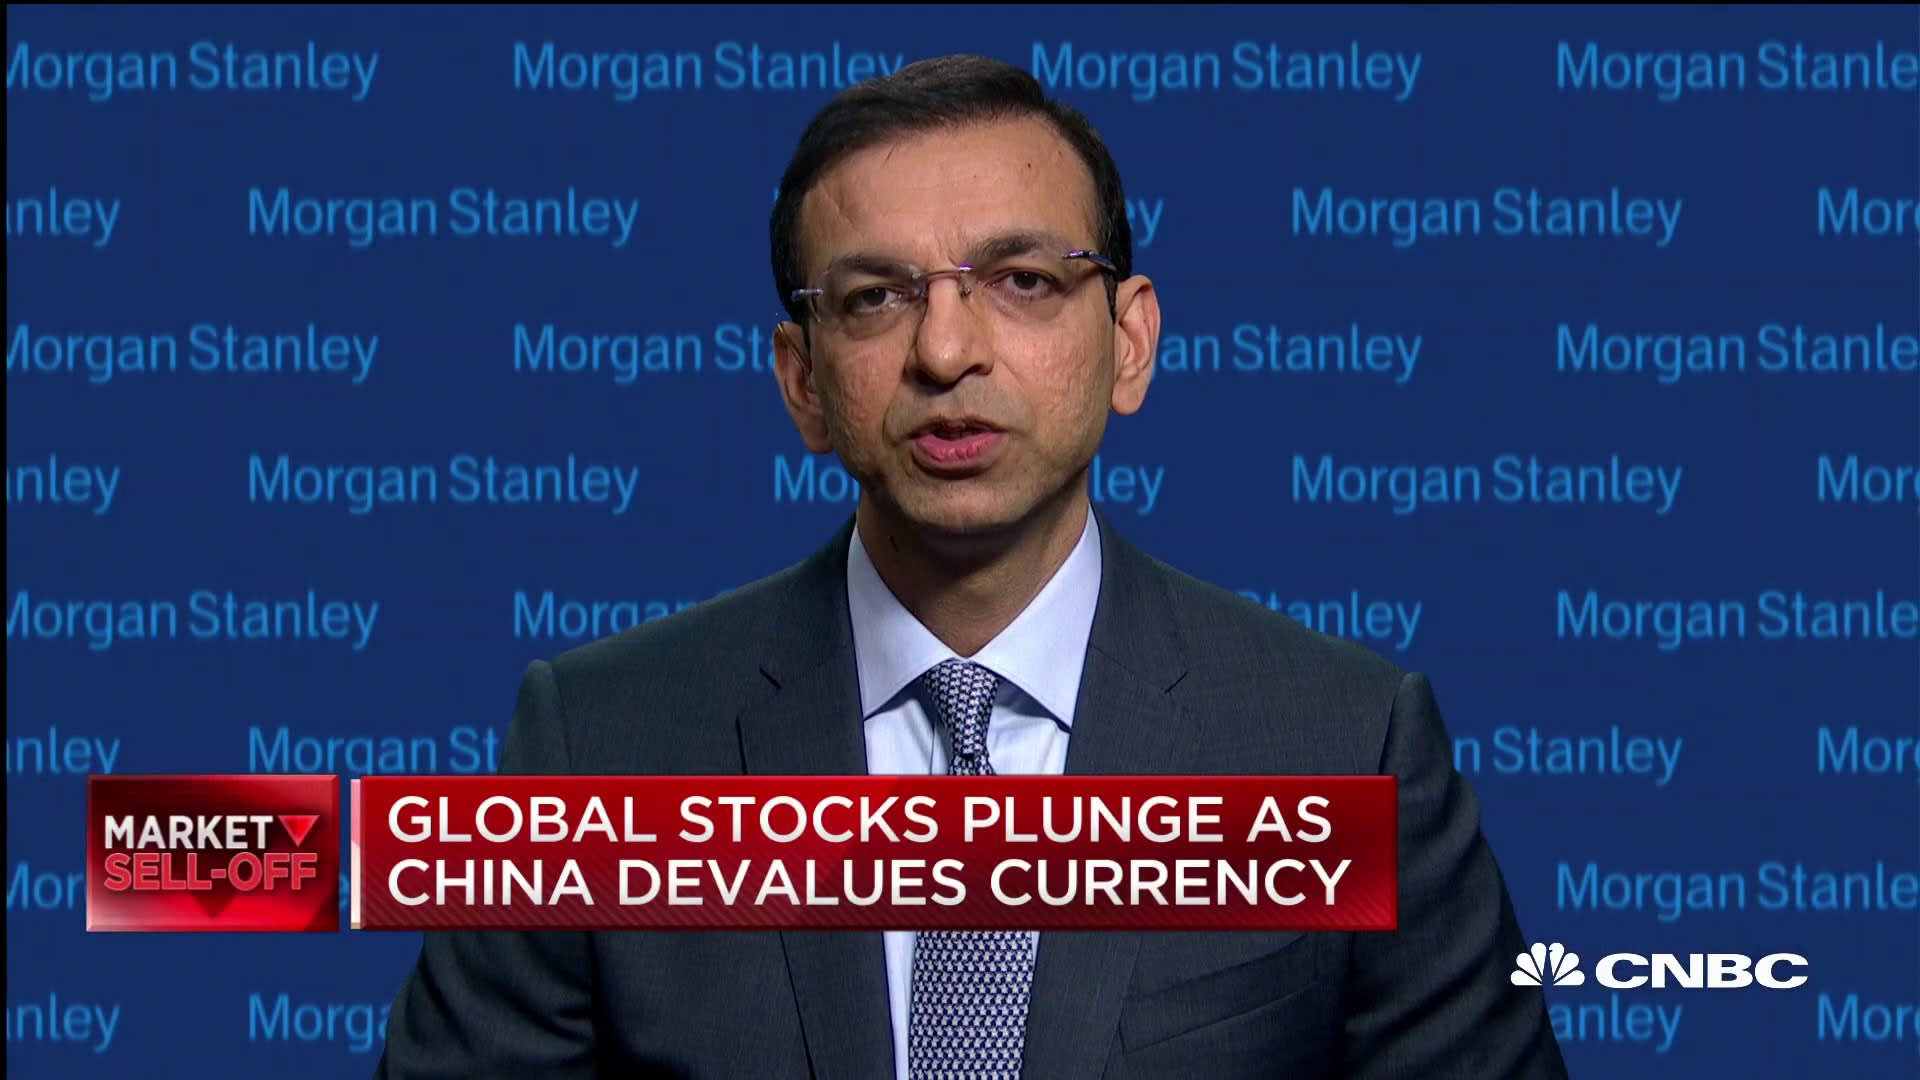 Closing Bell: Day Trading, Money Manager and Investor News, New York